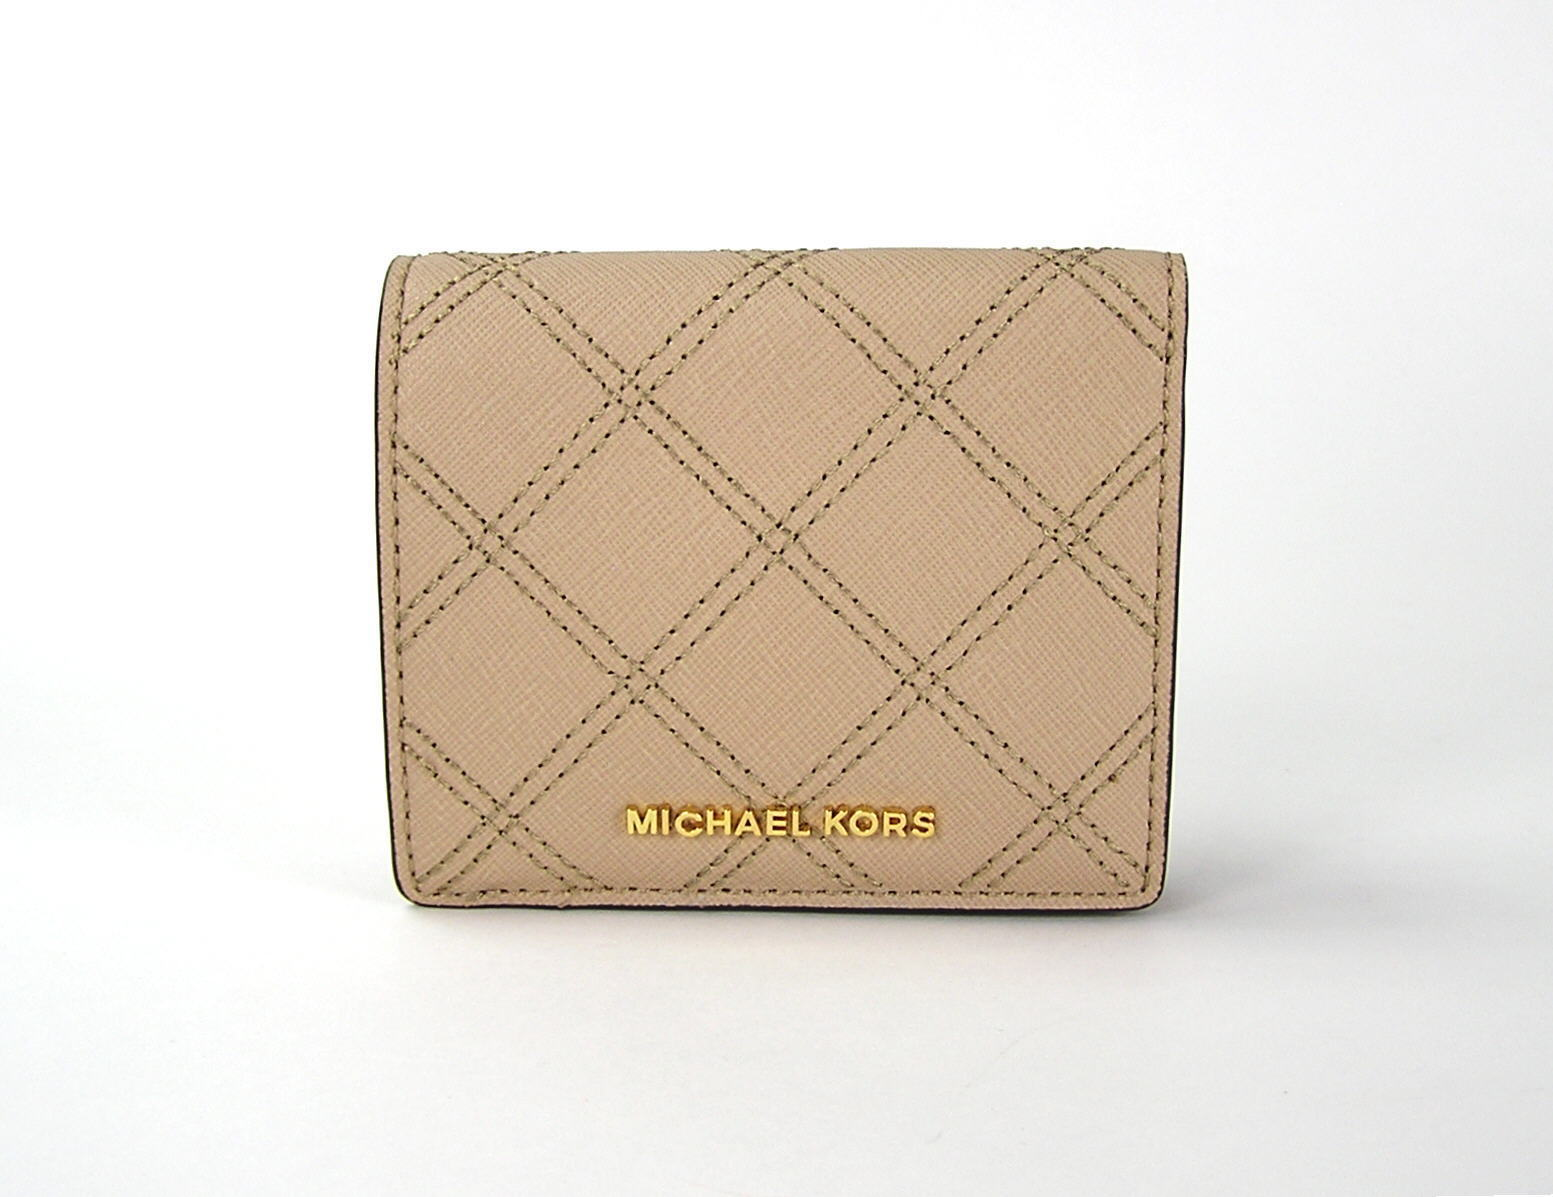 d63d4944a5da S l1600. S l1600. Previous. Michael Kors Jet Set Travel Medium Leather  Carryall Card Case Wallet Bisque NWT